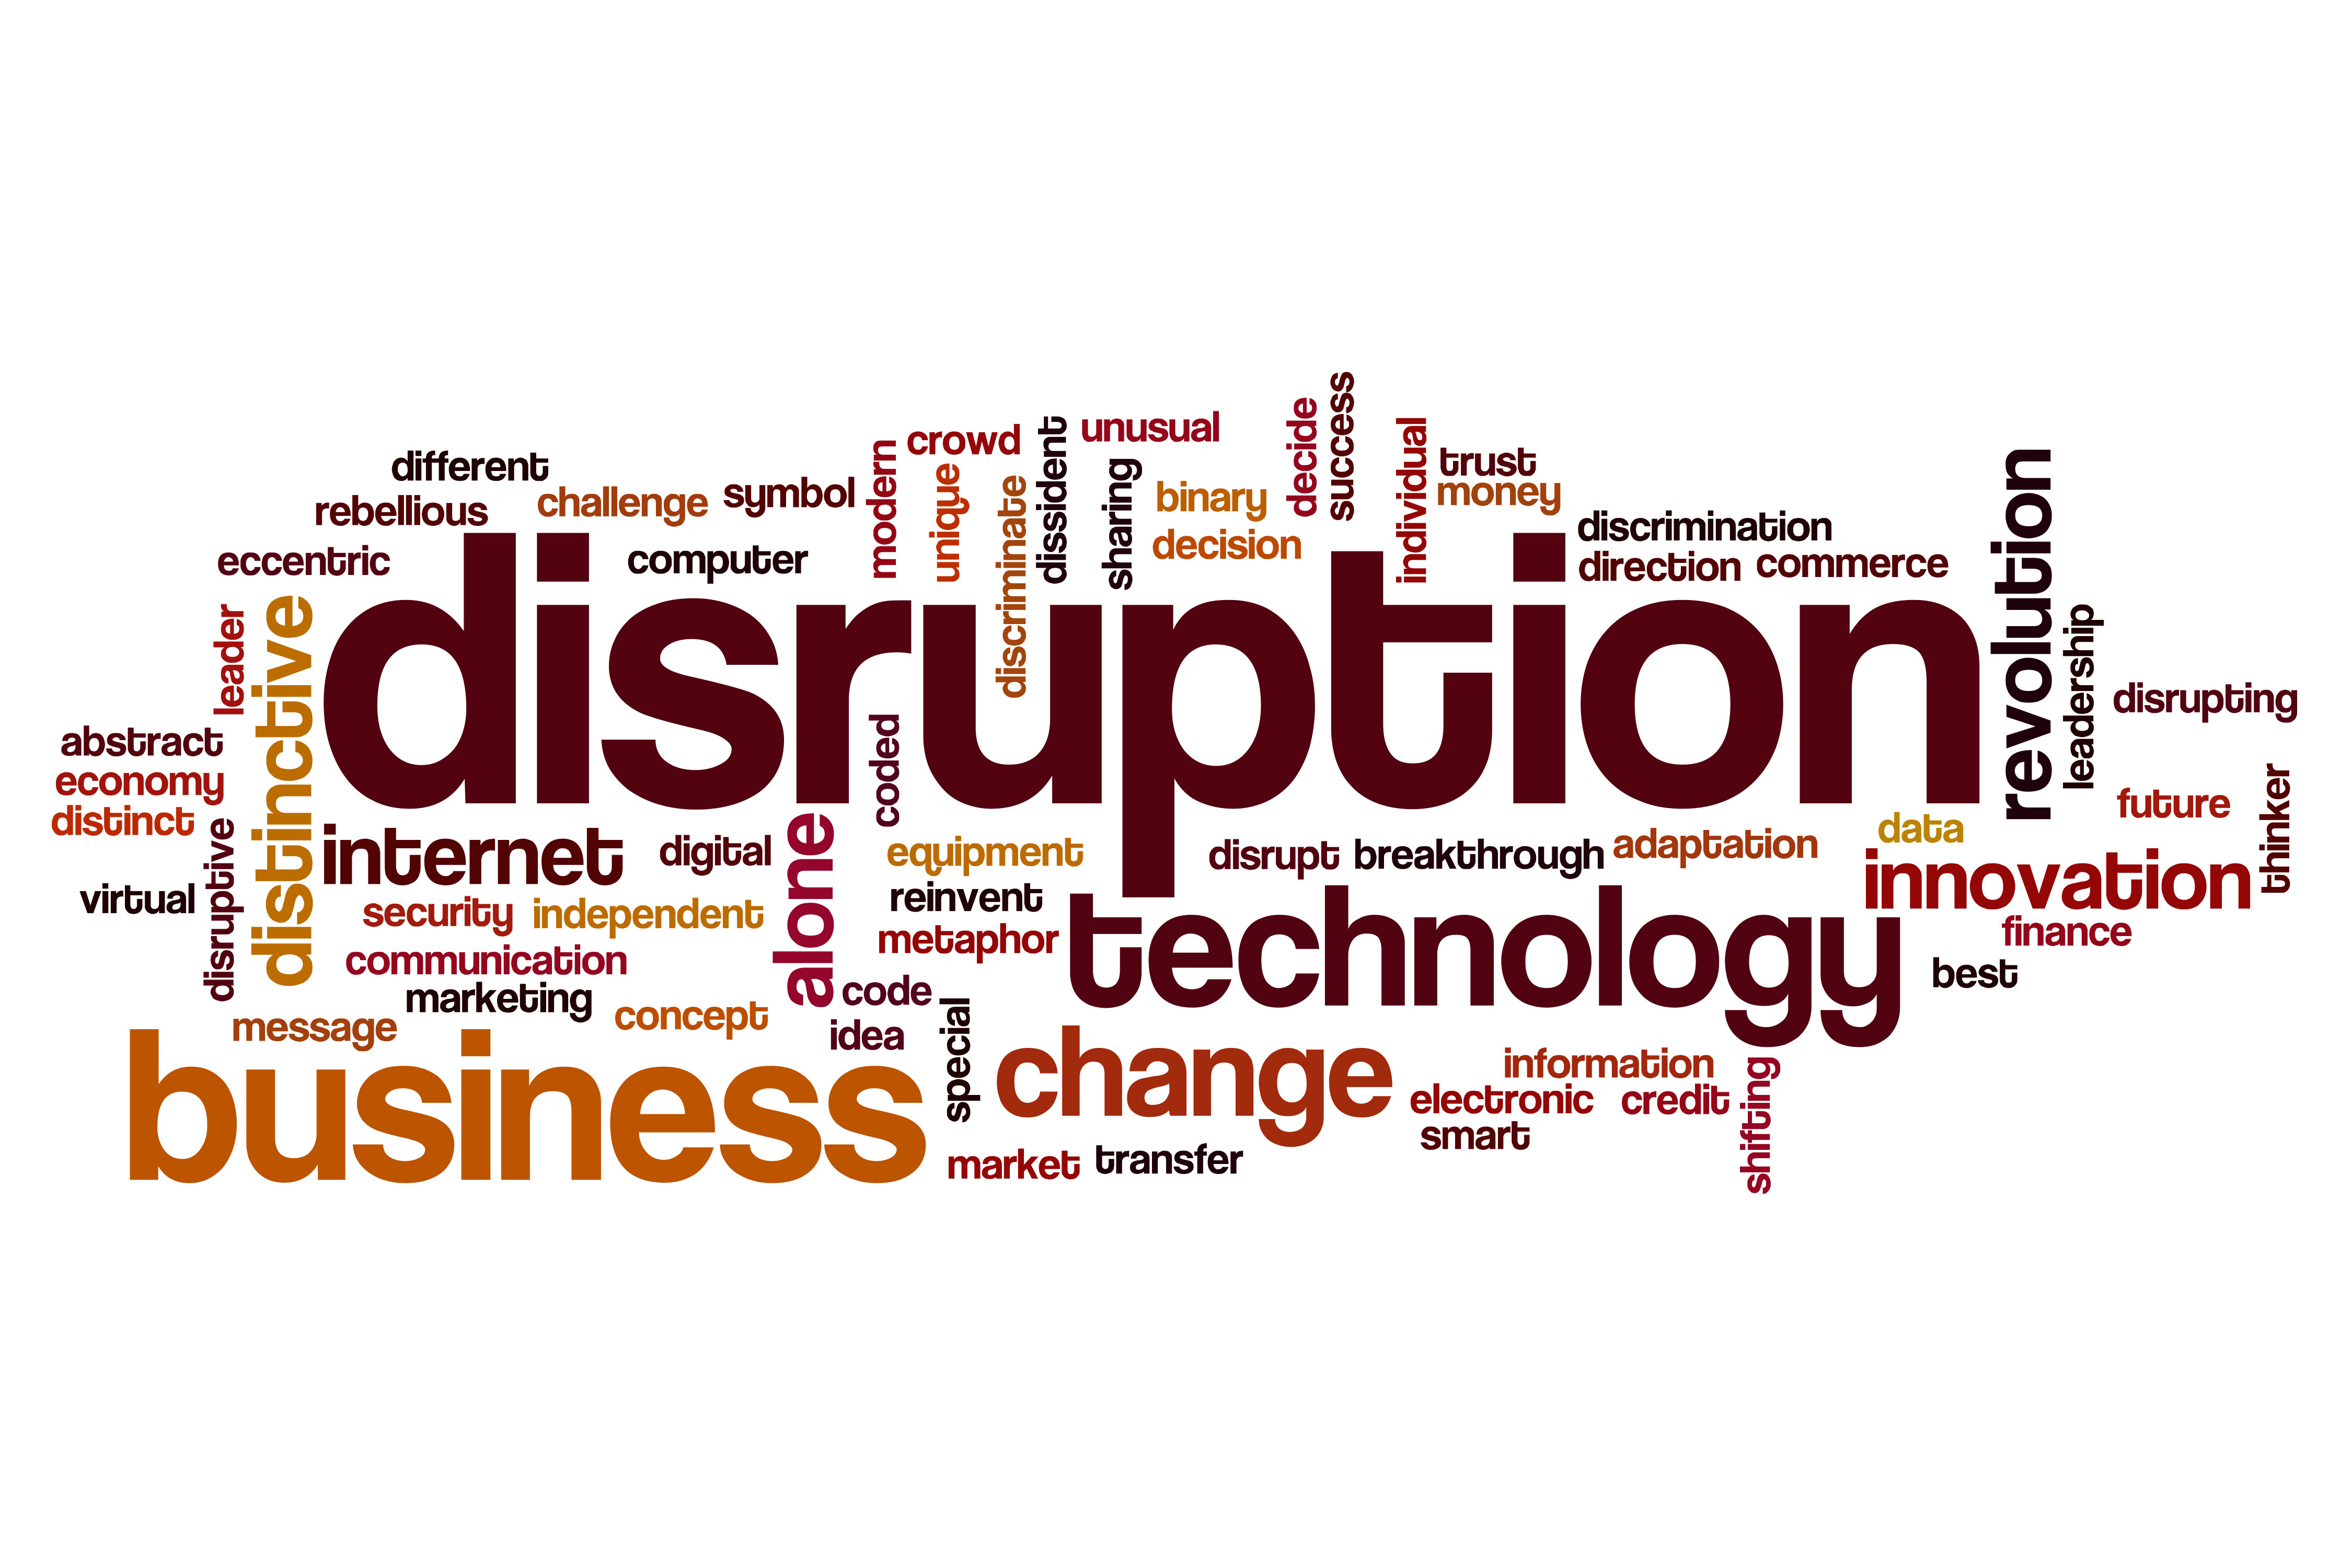 Disruption - the new normal?